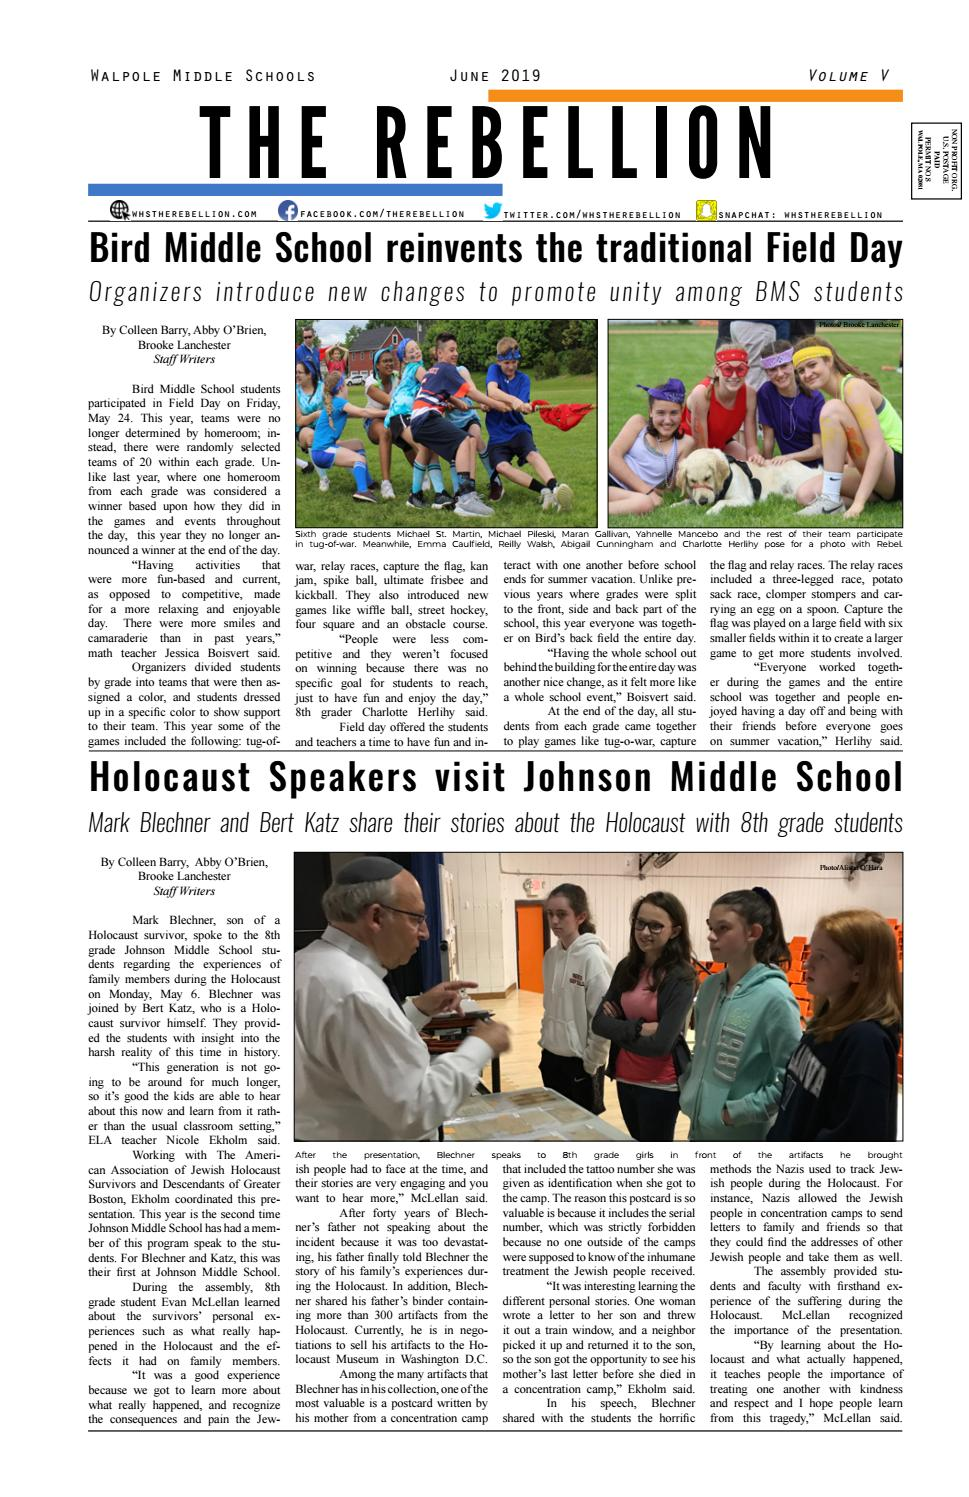 Click HERE to view work designed by Newspaper Class